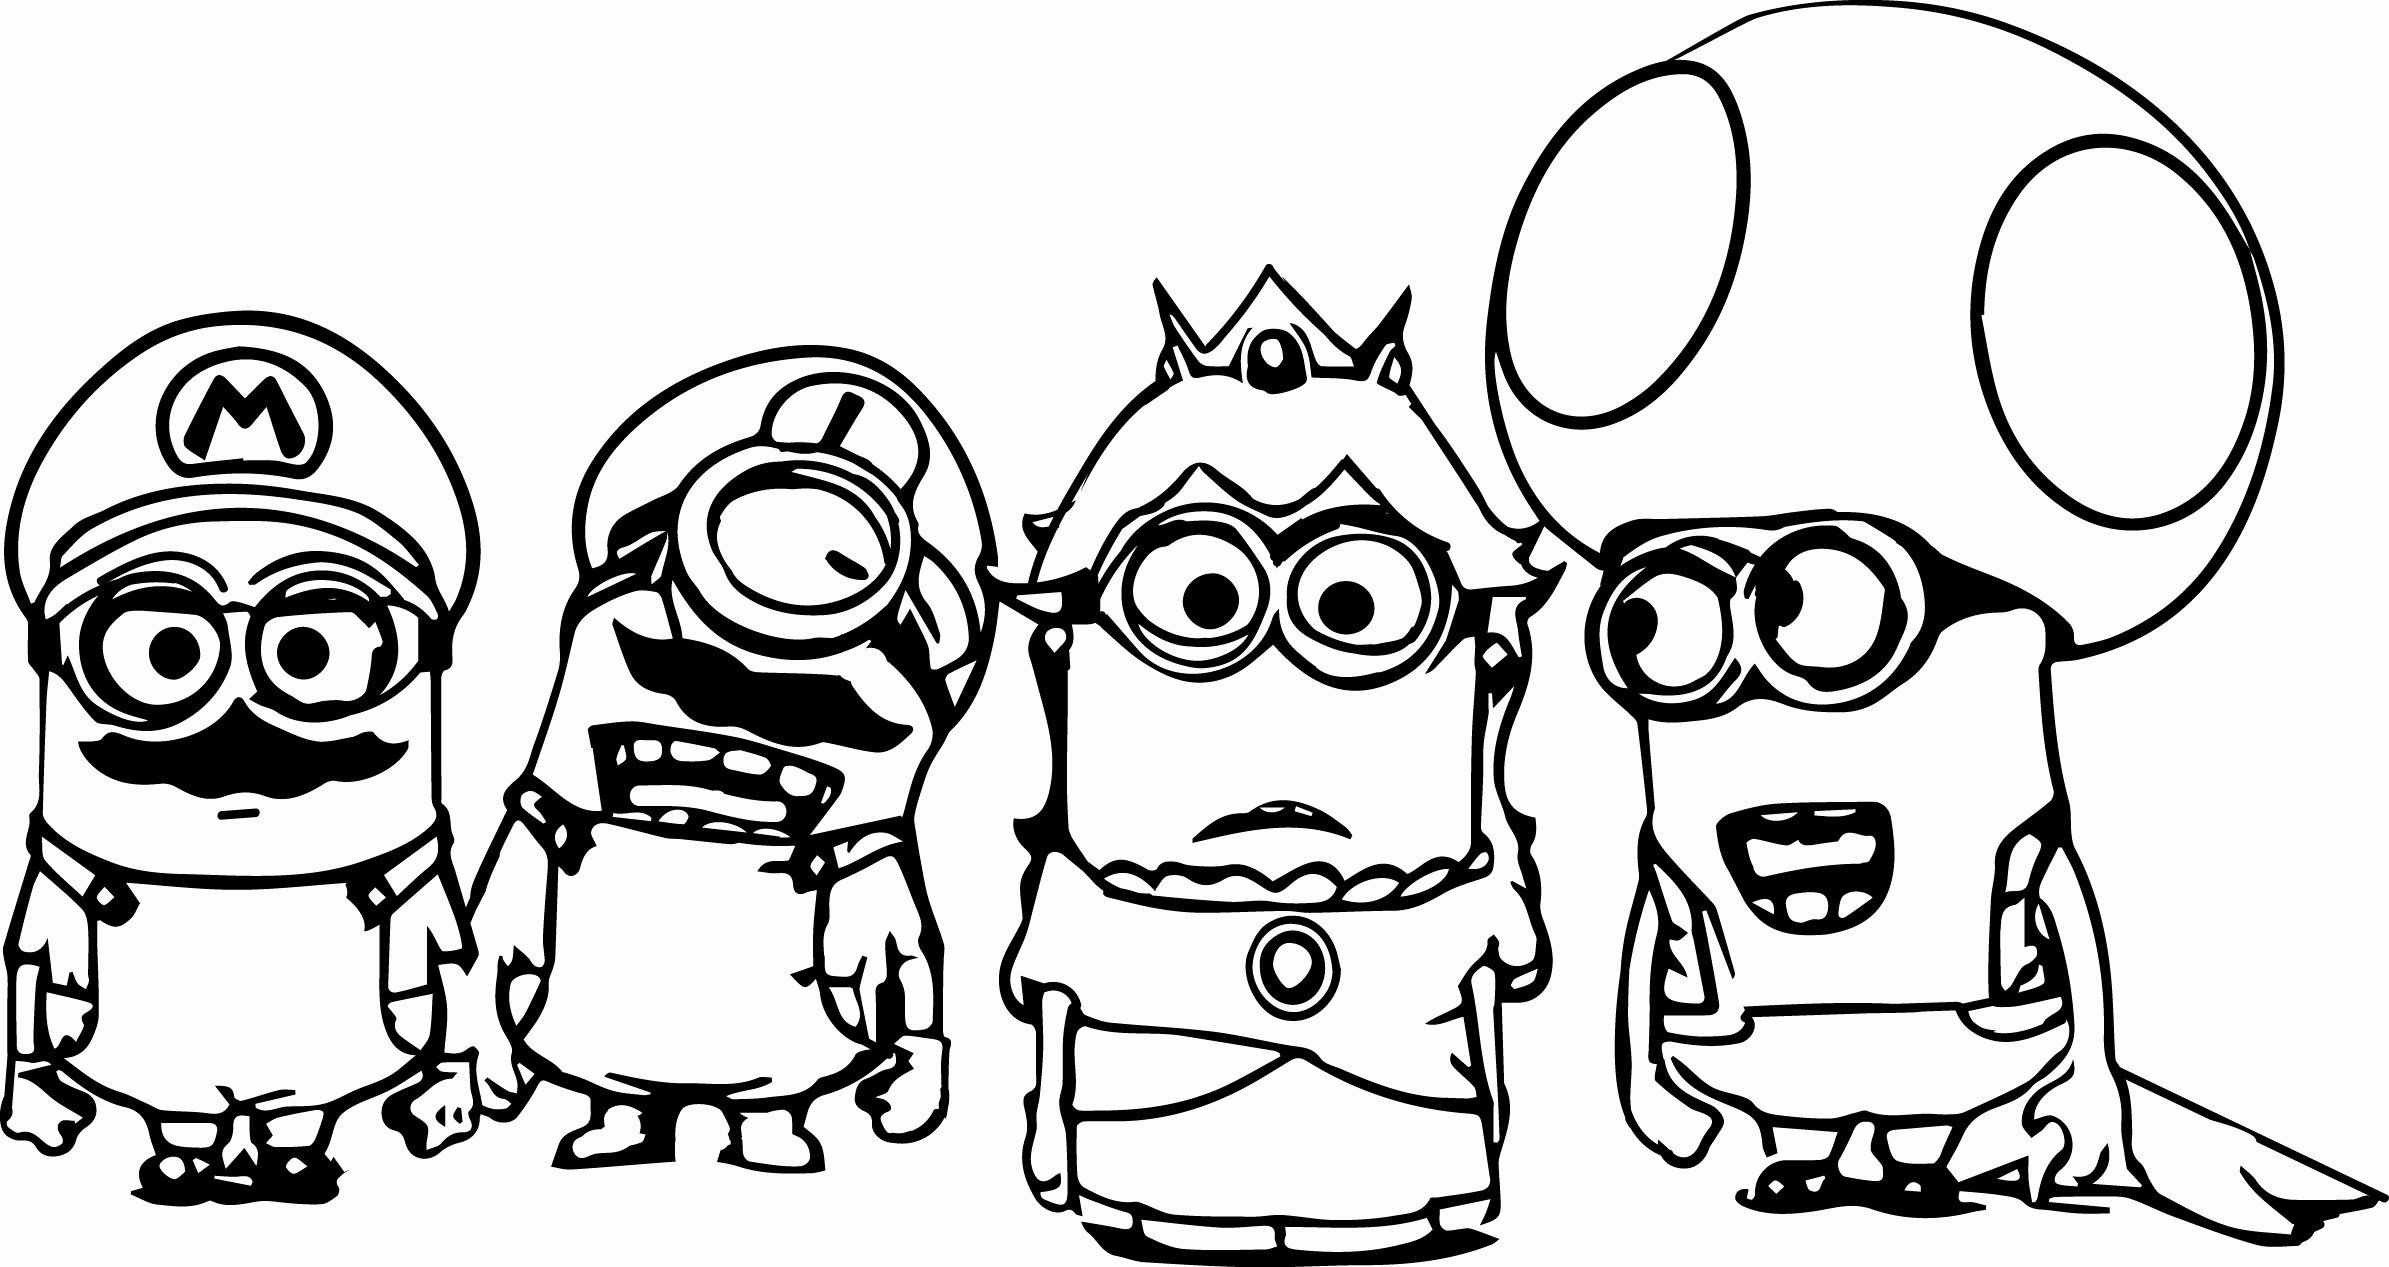 Free Minion Coloring Page Elegant Minion Coloring Pages Best